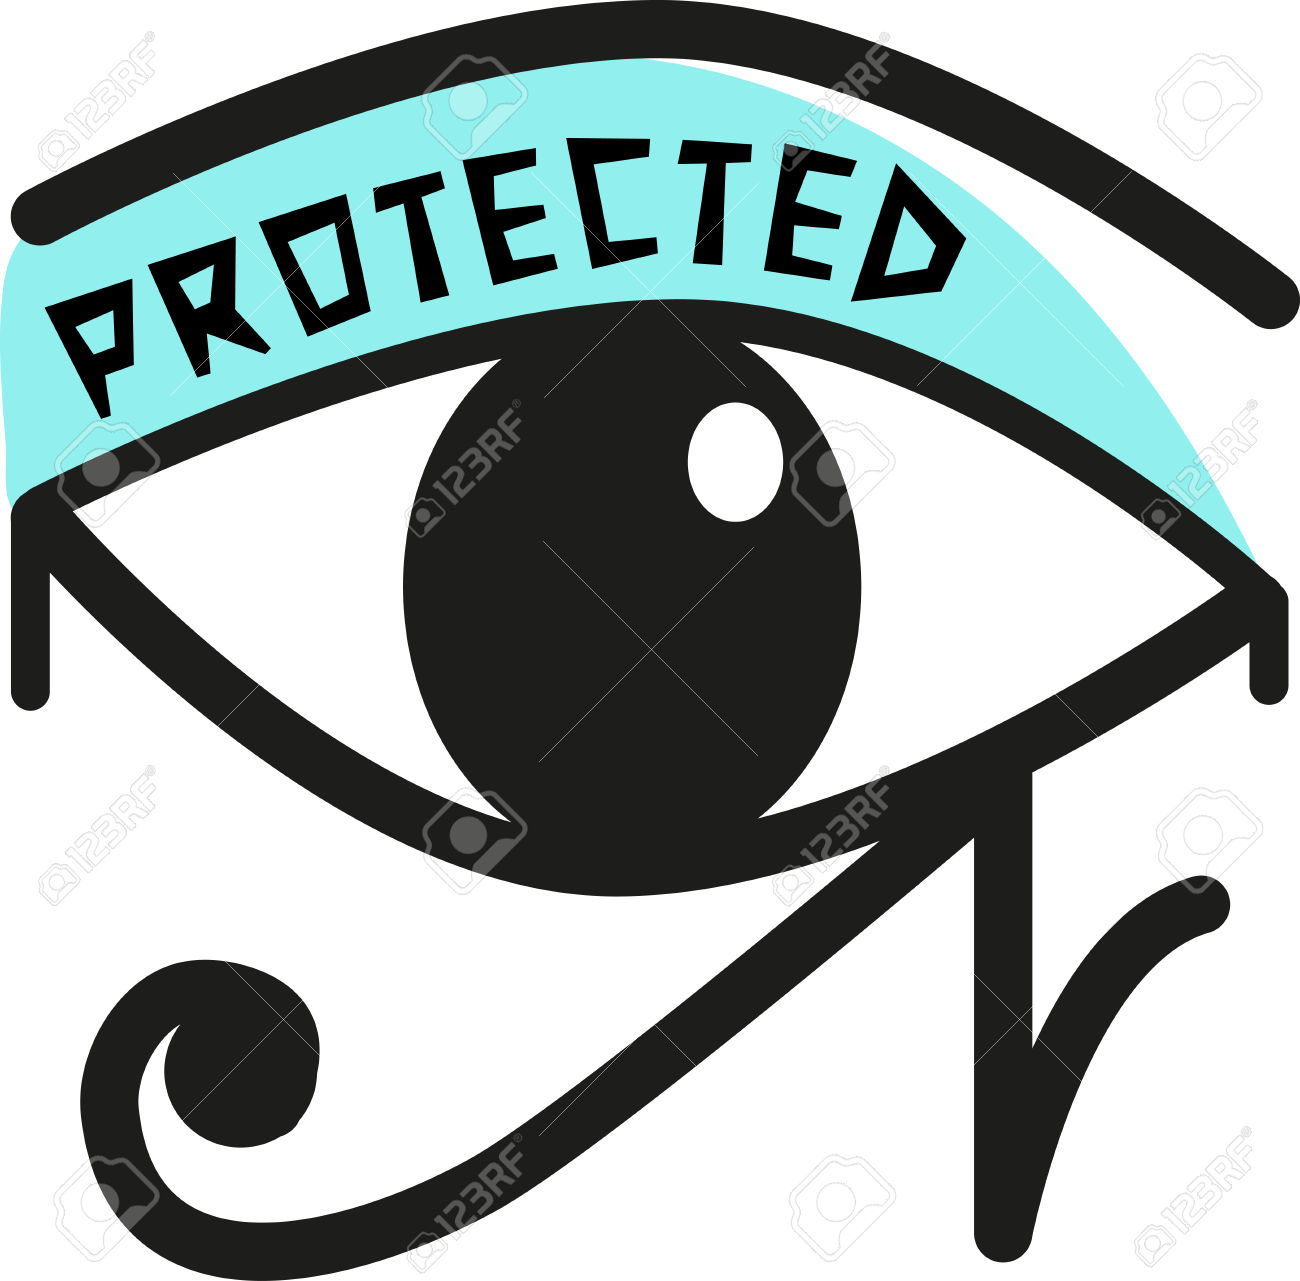 The Eye Of Horus Is An Ancient Egyptian Symbol Of Protection.